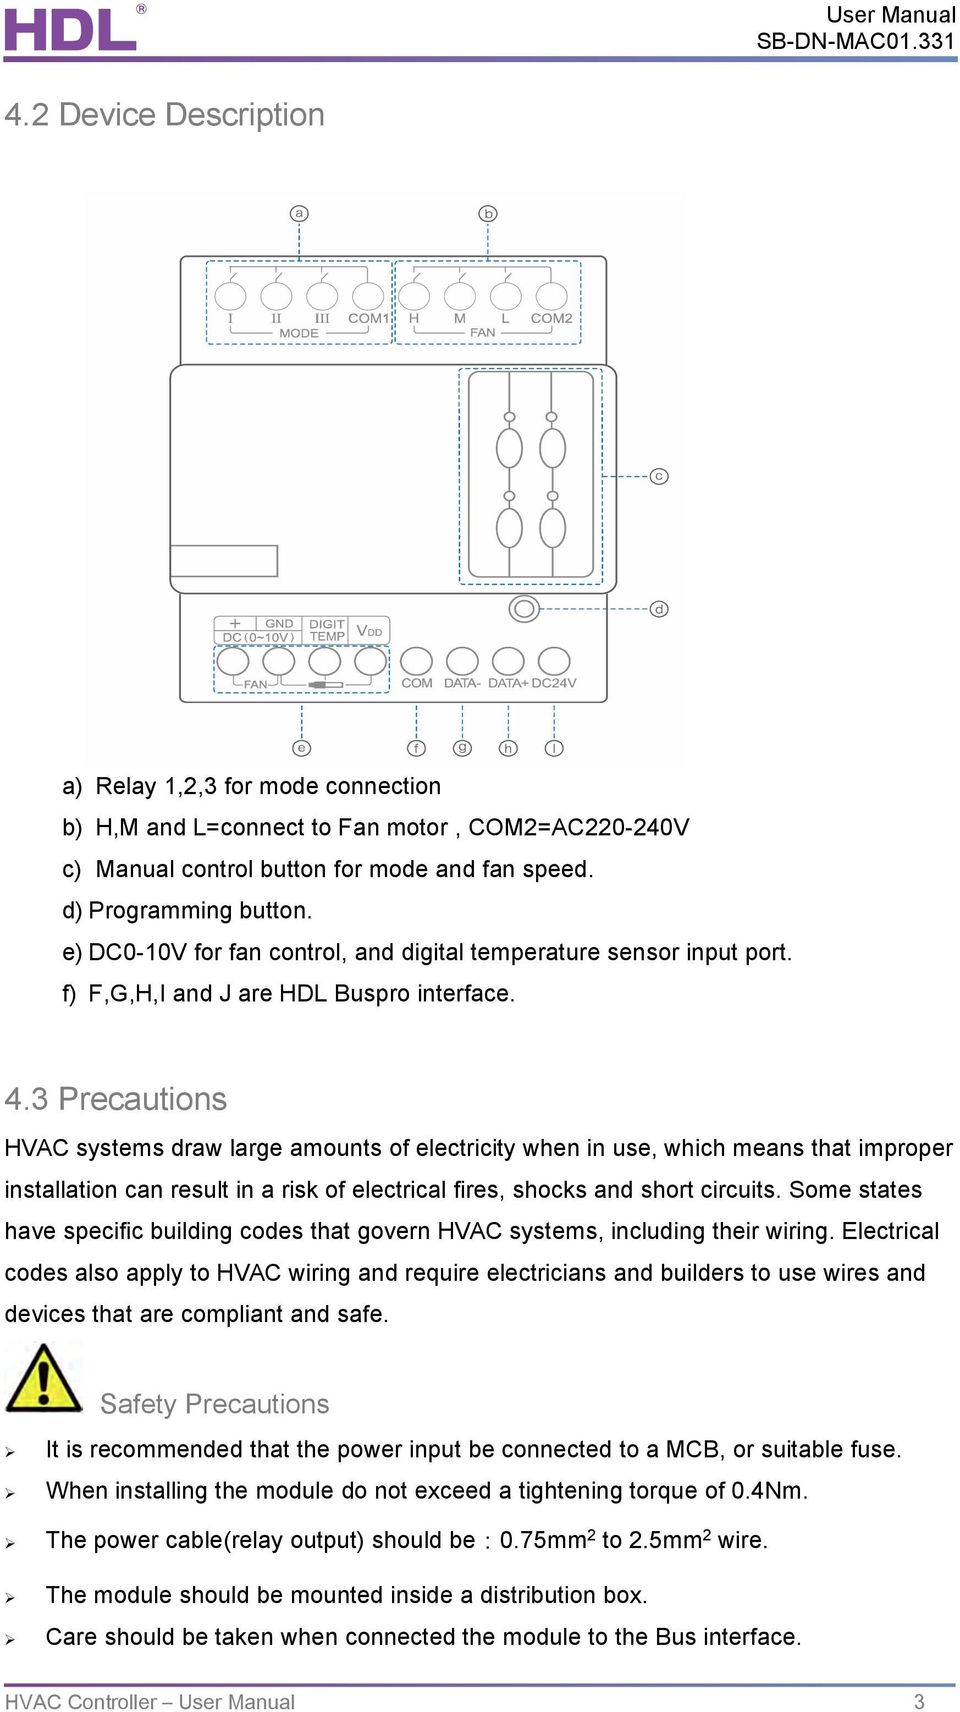 User Manual Air Conditioner Controller Sb Dn Hvac Mac01331 Pdf Electrical Wiring 3 Precautions Systems Draw Large Amounts Of Electricity When In Use Which Means That